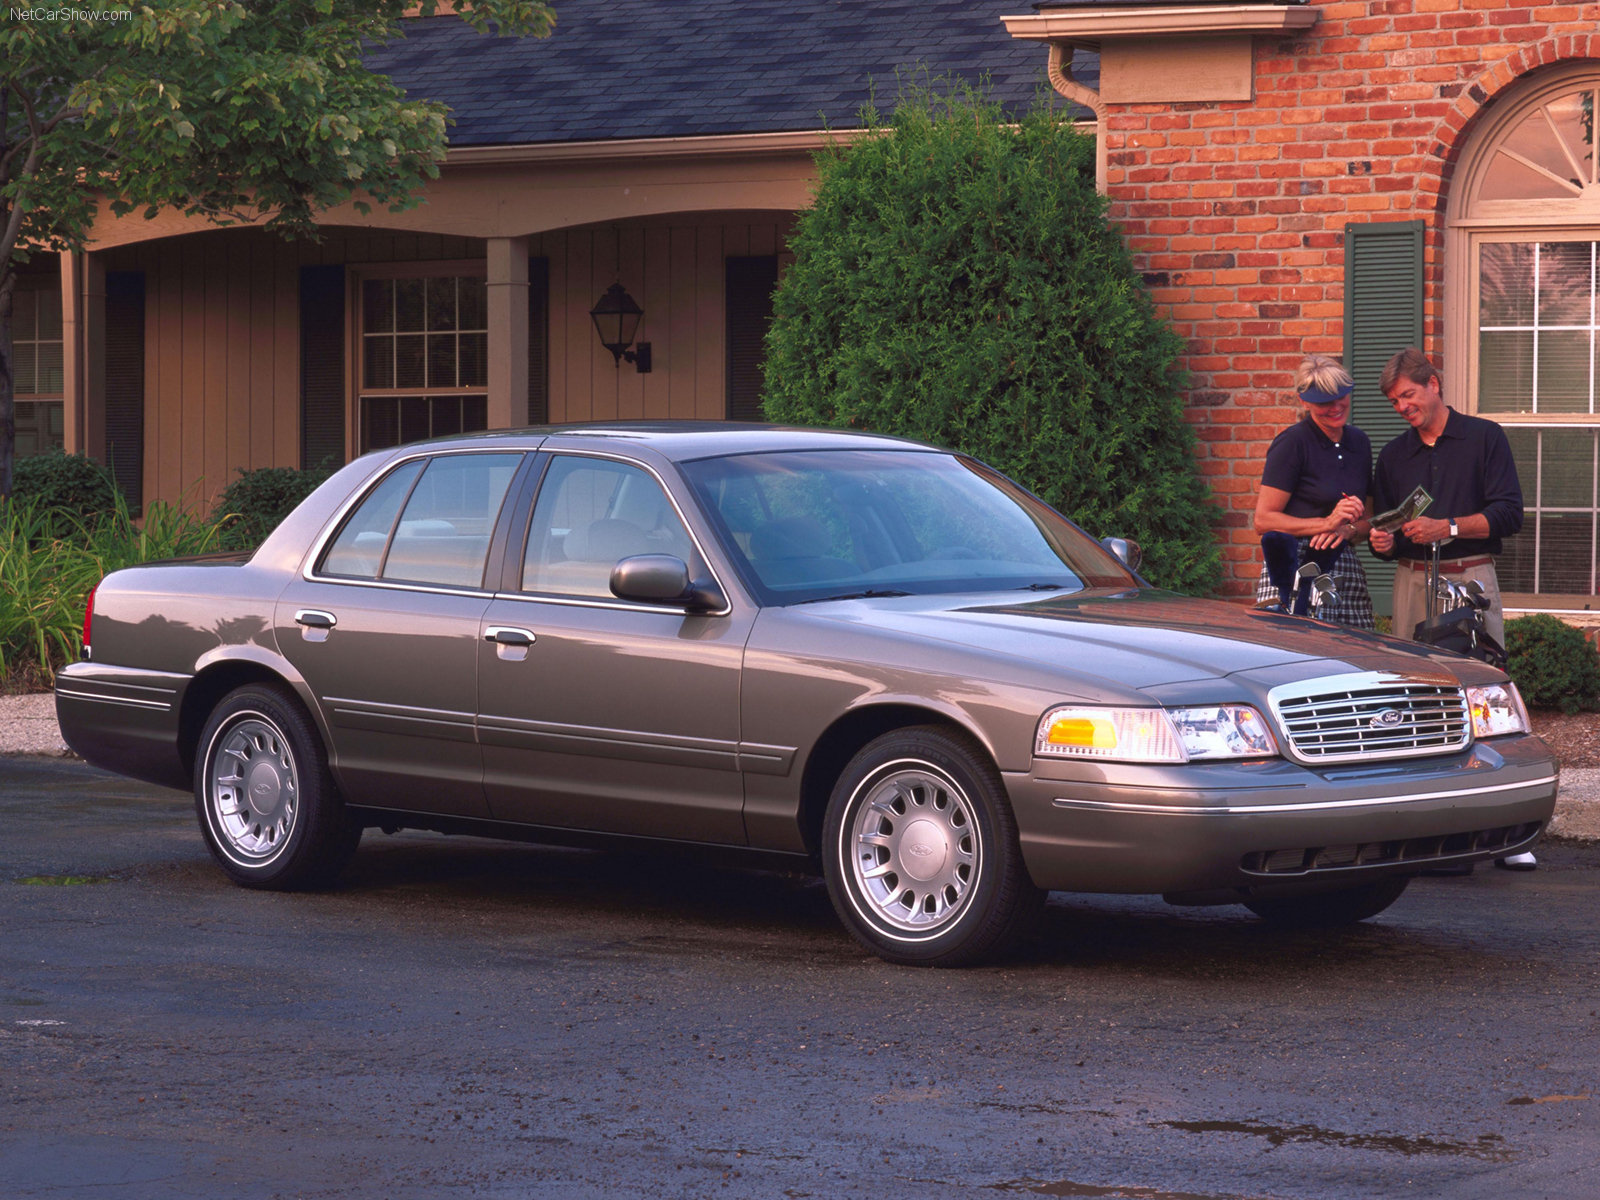 Ford-Crown_Victoria_mp8_pic_33132.jpg